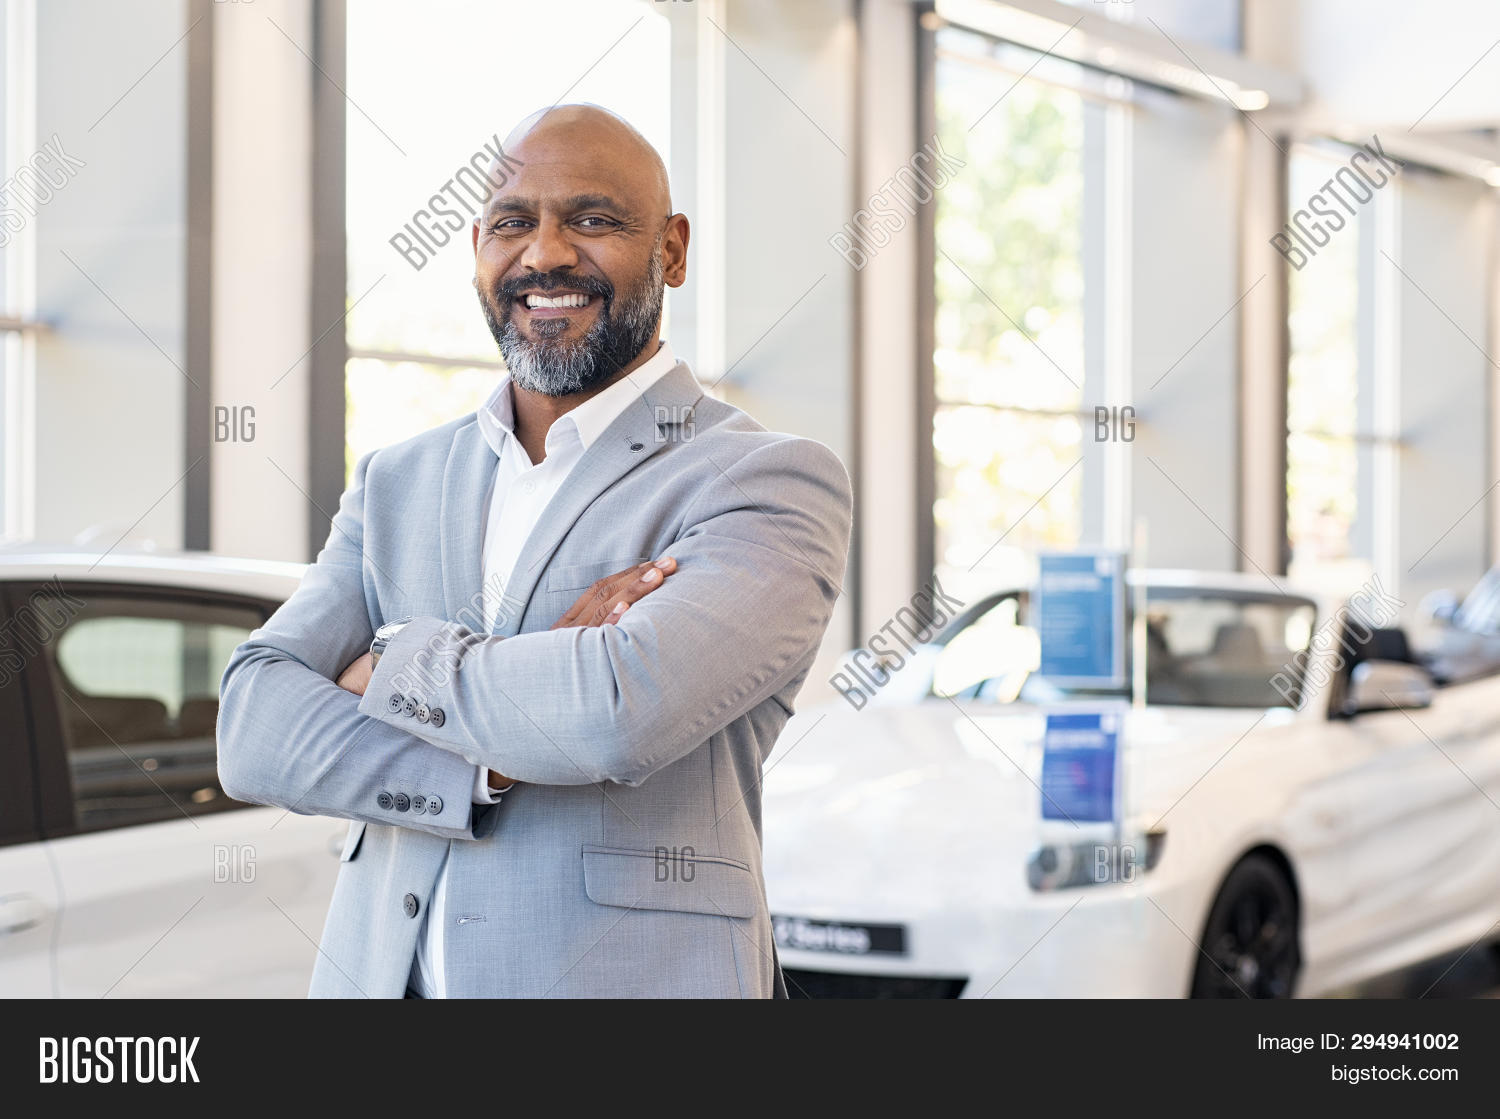 african,african american,african man,agent,agreement,american,auto,automobile,automotive,bearded man,black,business,businessman,car dealer,car dealership,car dealership interior,career,confident,copy space,crossed arms,dealer,dealership,happy,job,looking at camera,luxury,mature,mid adult man,middle aged man,modern,new car,occupation,portrait,professional,proud,rental,sale,salesman,salon,satisfaction,satisfied,seller,selling,service,showroom,smile,successful,toothy smile,transportation,vehicle